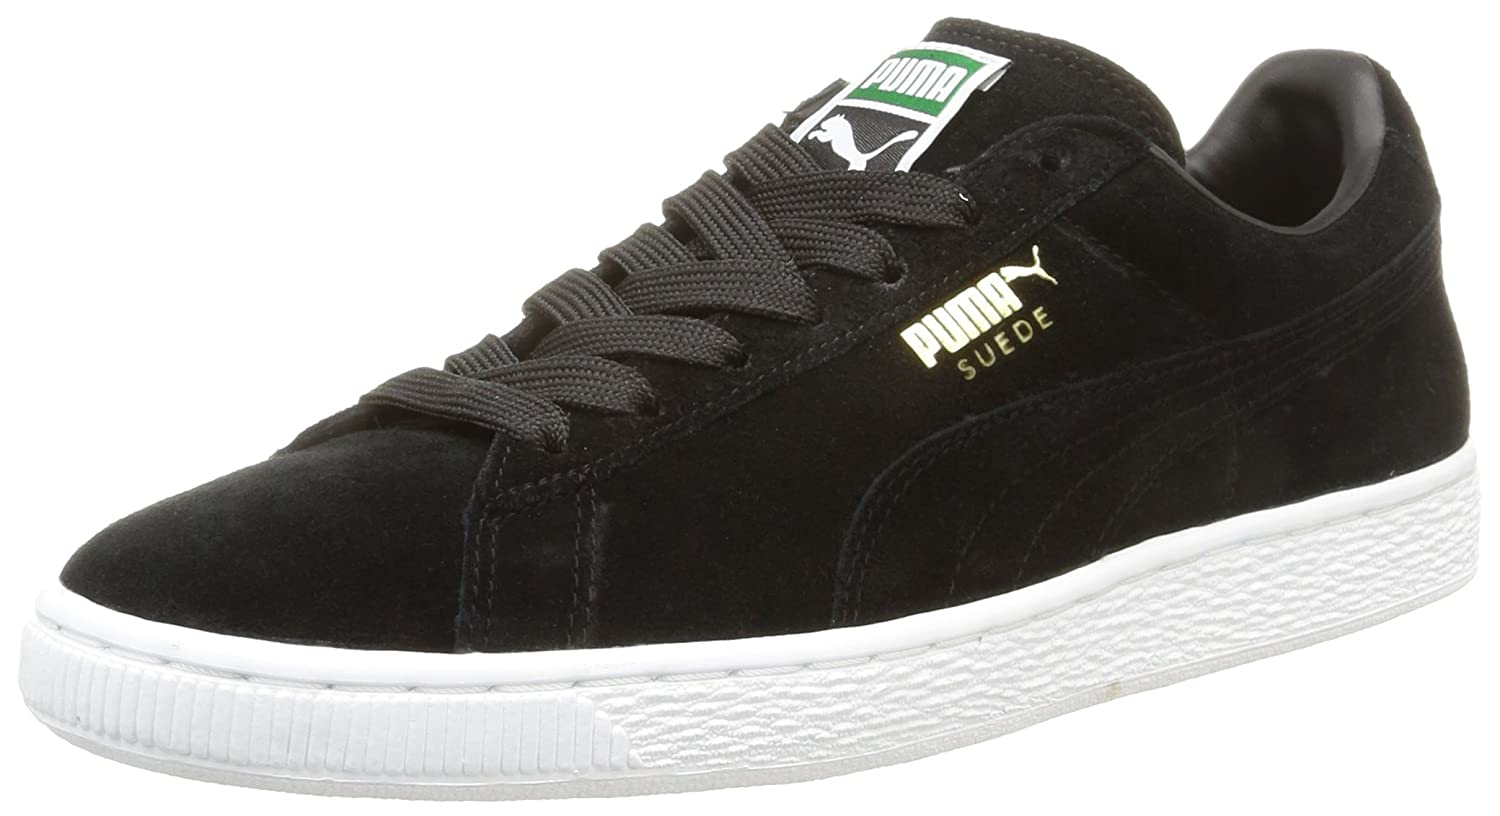 Puma Suede Classic+, Herren High-Top Sneaker  42.5 EU|Black/Team Gold/White